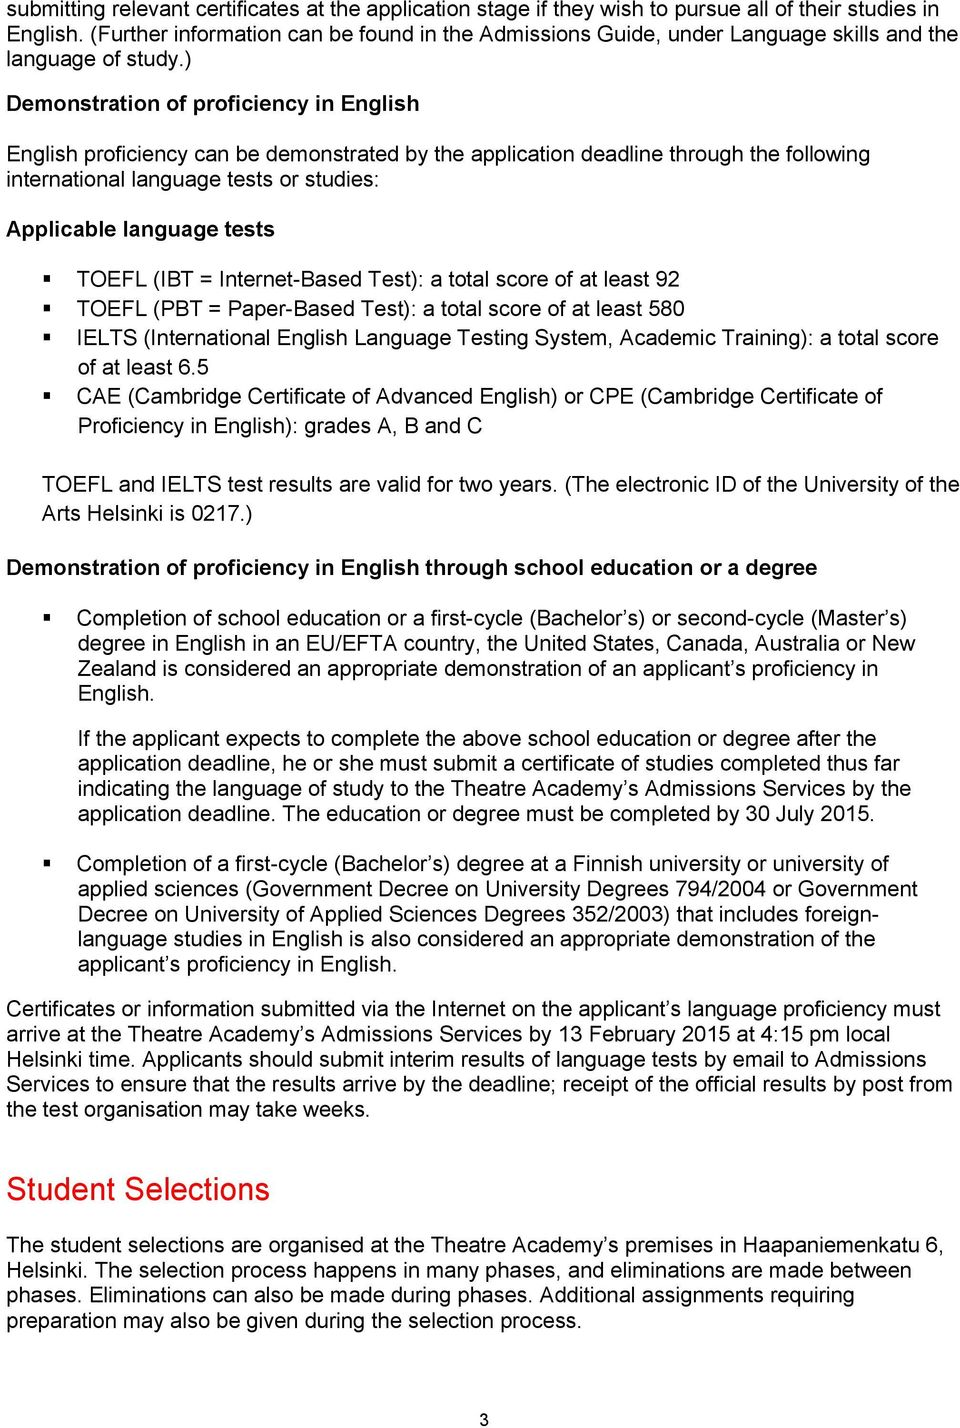 ) Demonstration of proficiency in English English proficiency can be demonstrated by the application deadline through the following international language tests or studies: Applicable language tests